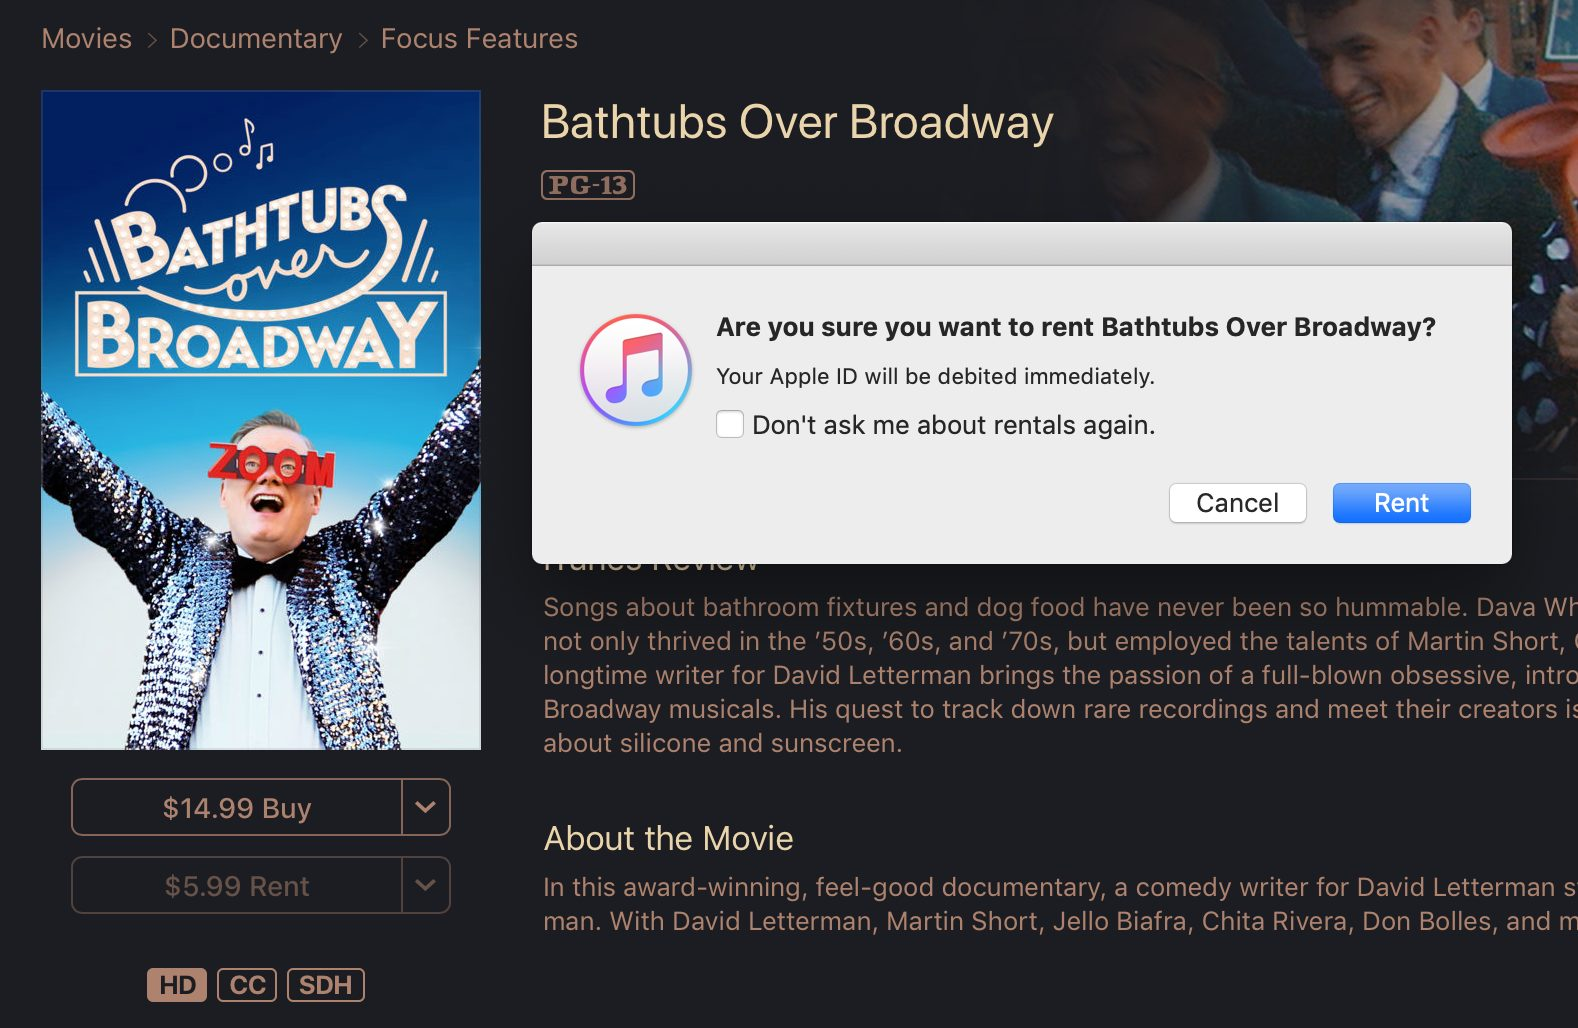 How To Find the Best Deal on Digital Movie Rentals - TidBITS